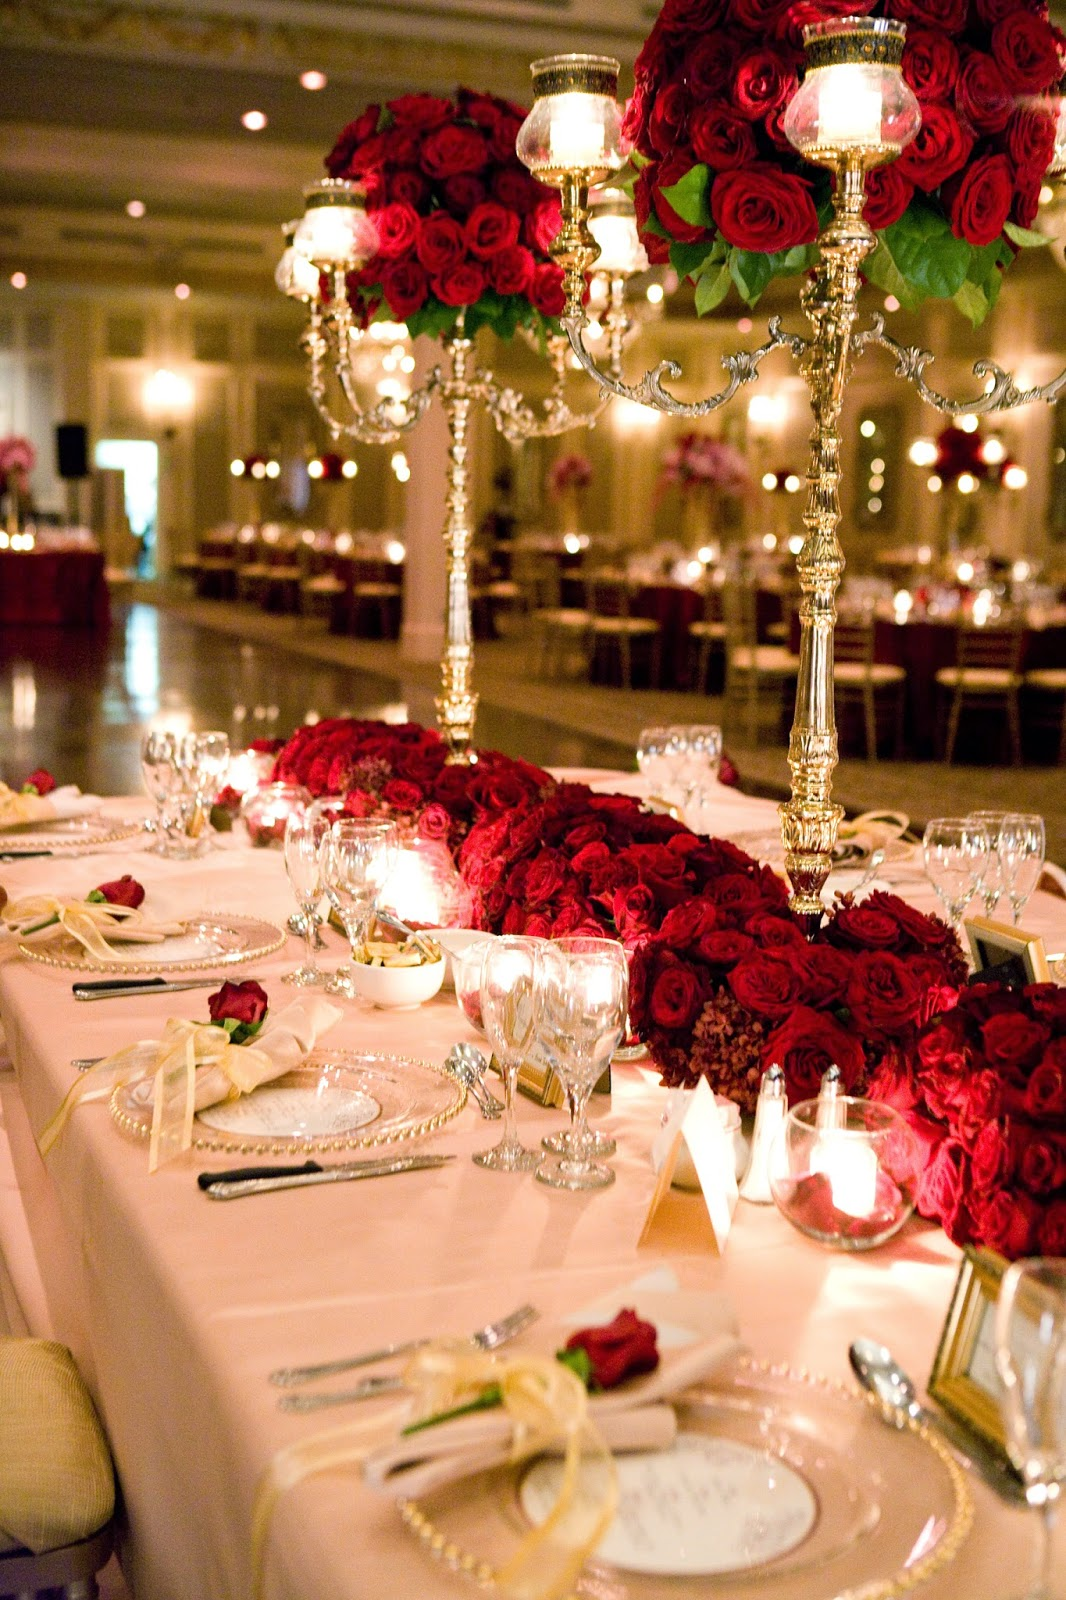 Vintage red wedding themes wedding stuff ideas for What are wedding themes